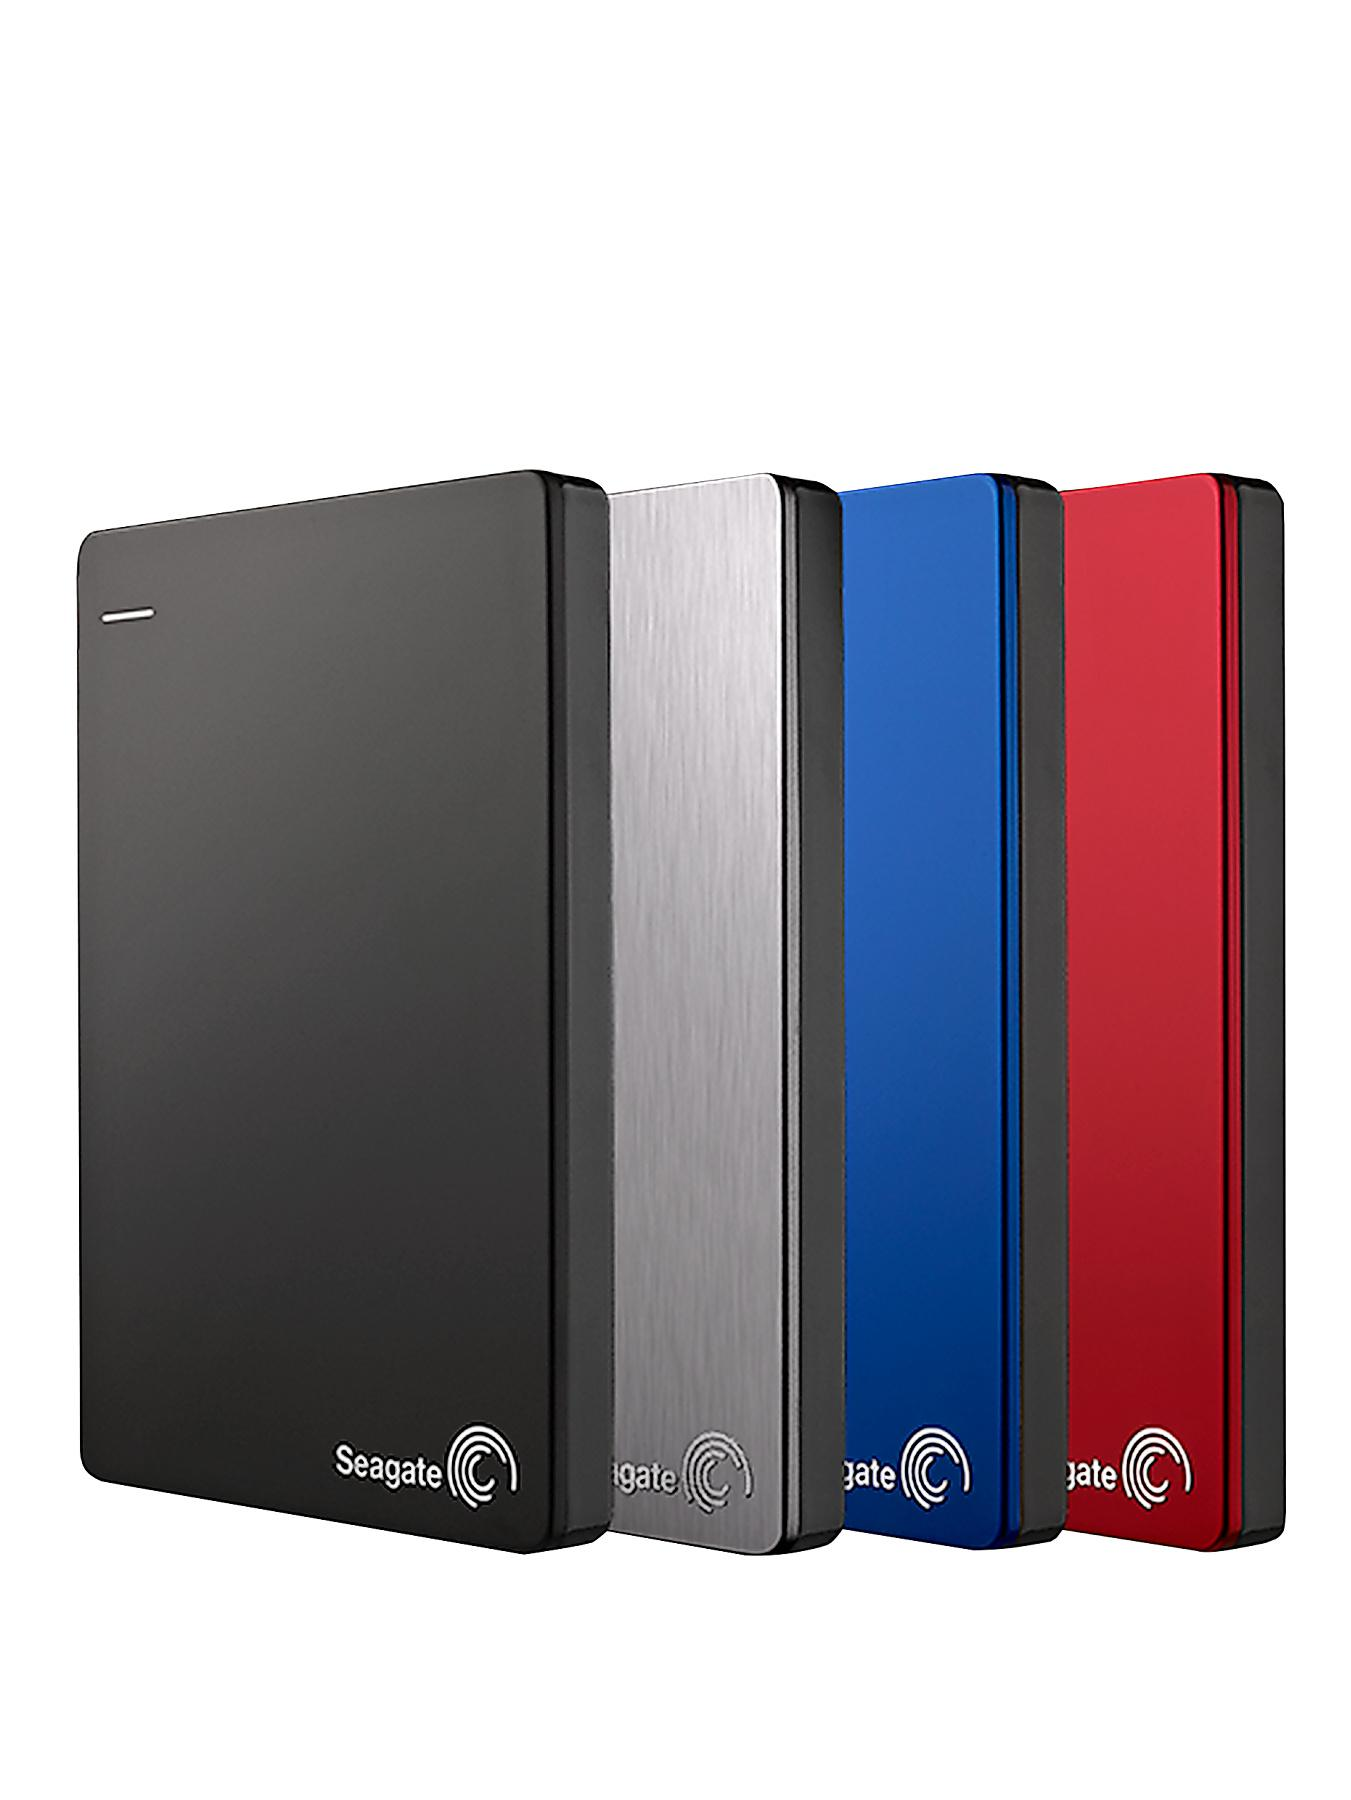 Seagate 1Tb Backup Plus Slim Portable Drive - Silver, Silver